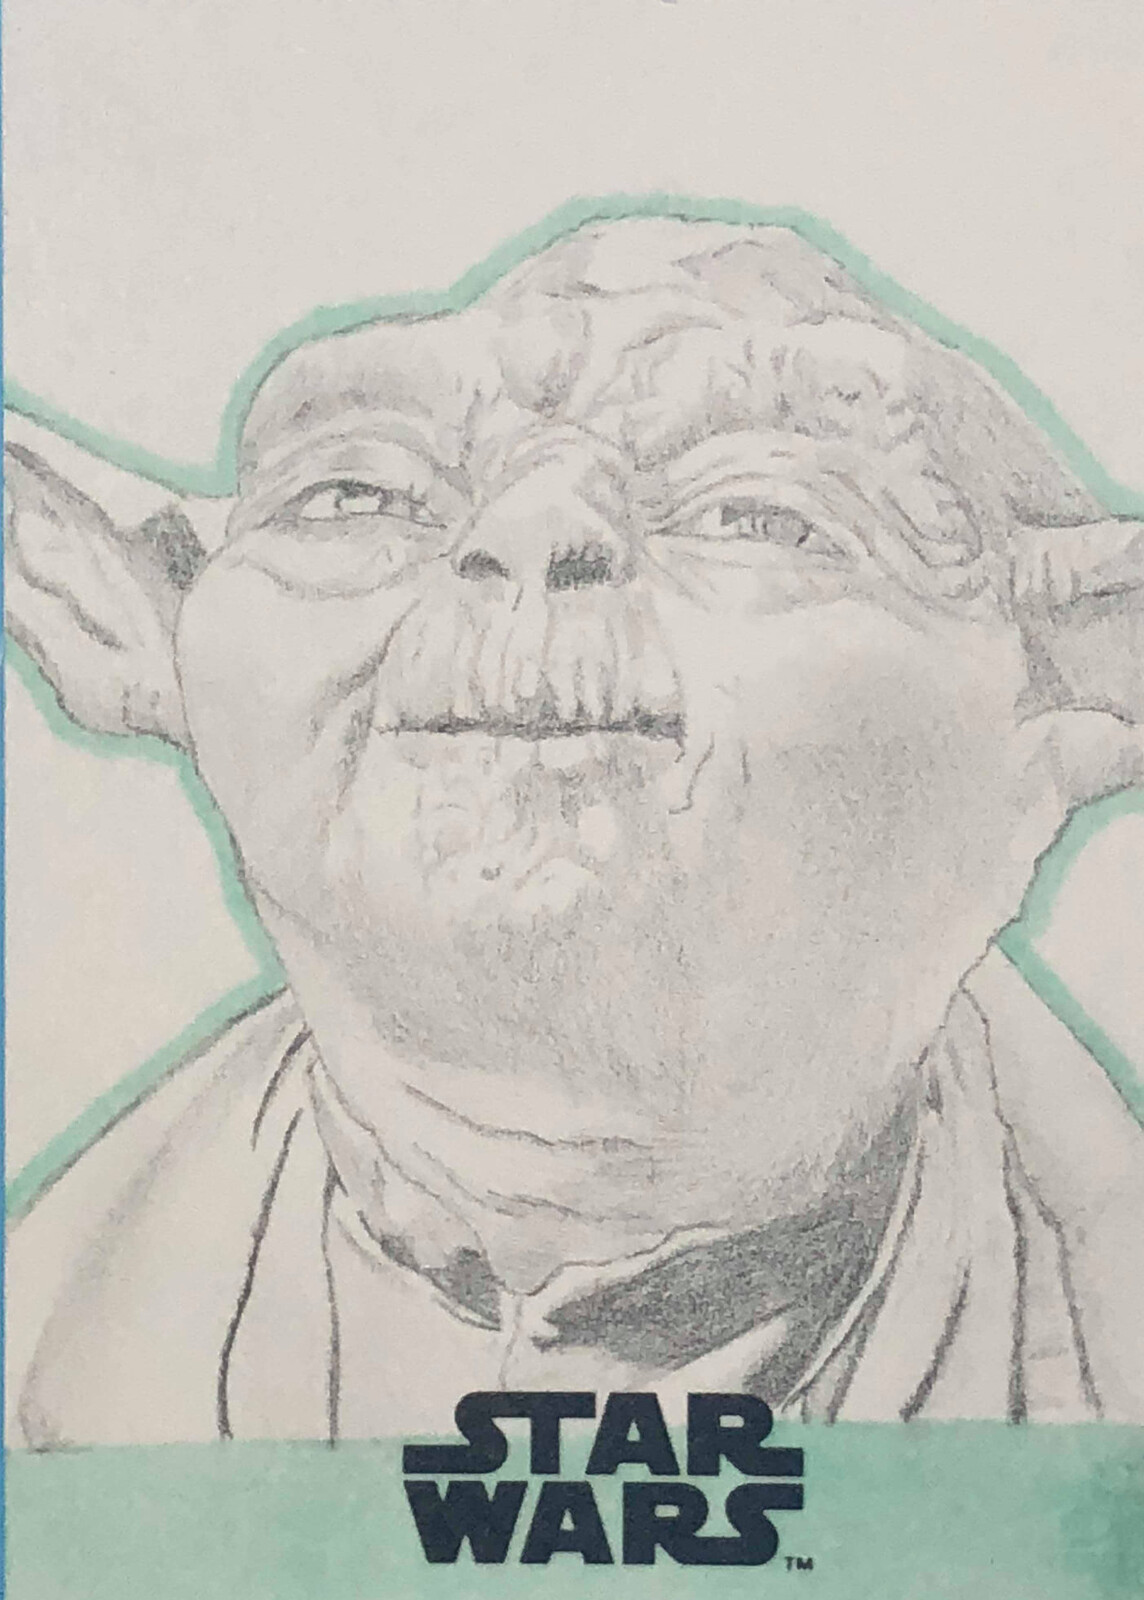 Yoda's force ghost from The Last Jedi